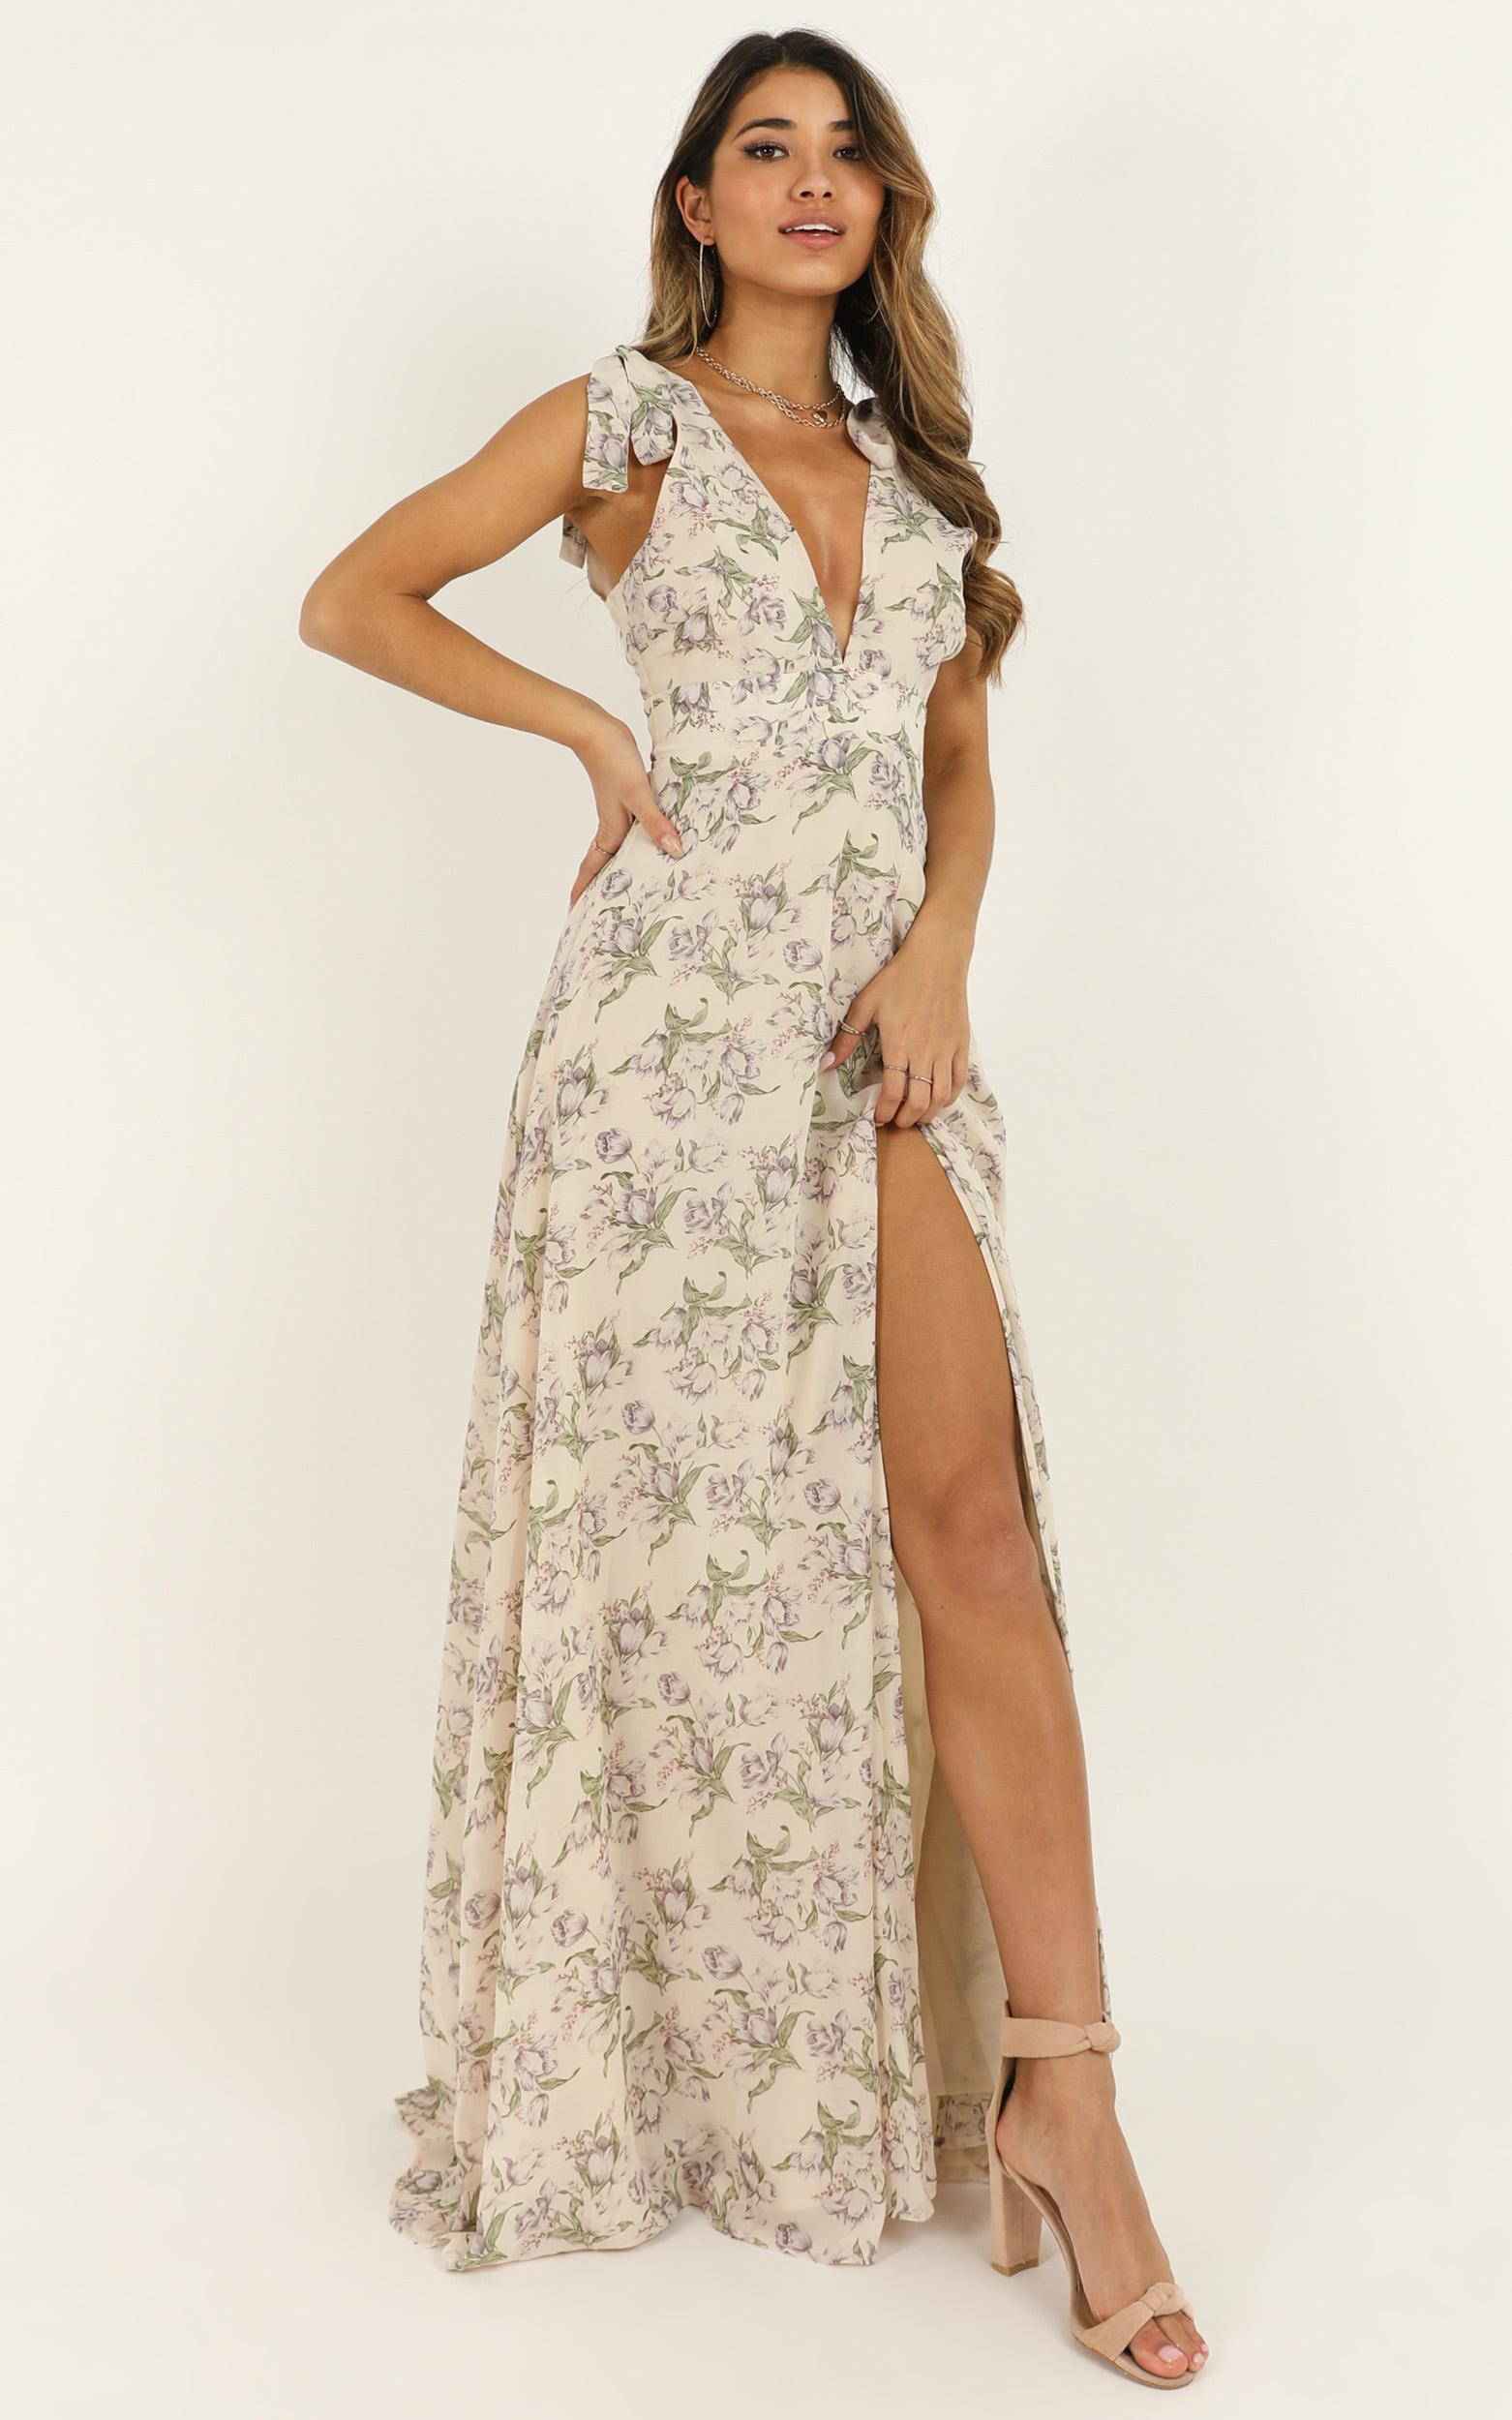 Hard To Keep Up Dress In cream floral - 16 (XXL), Cream, hi-res image number null